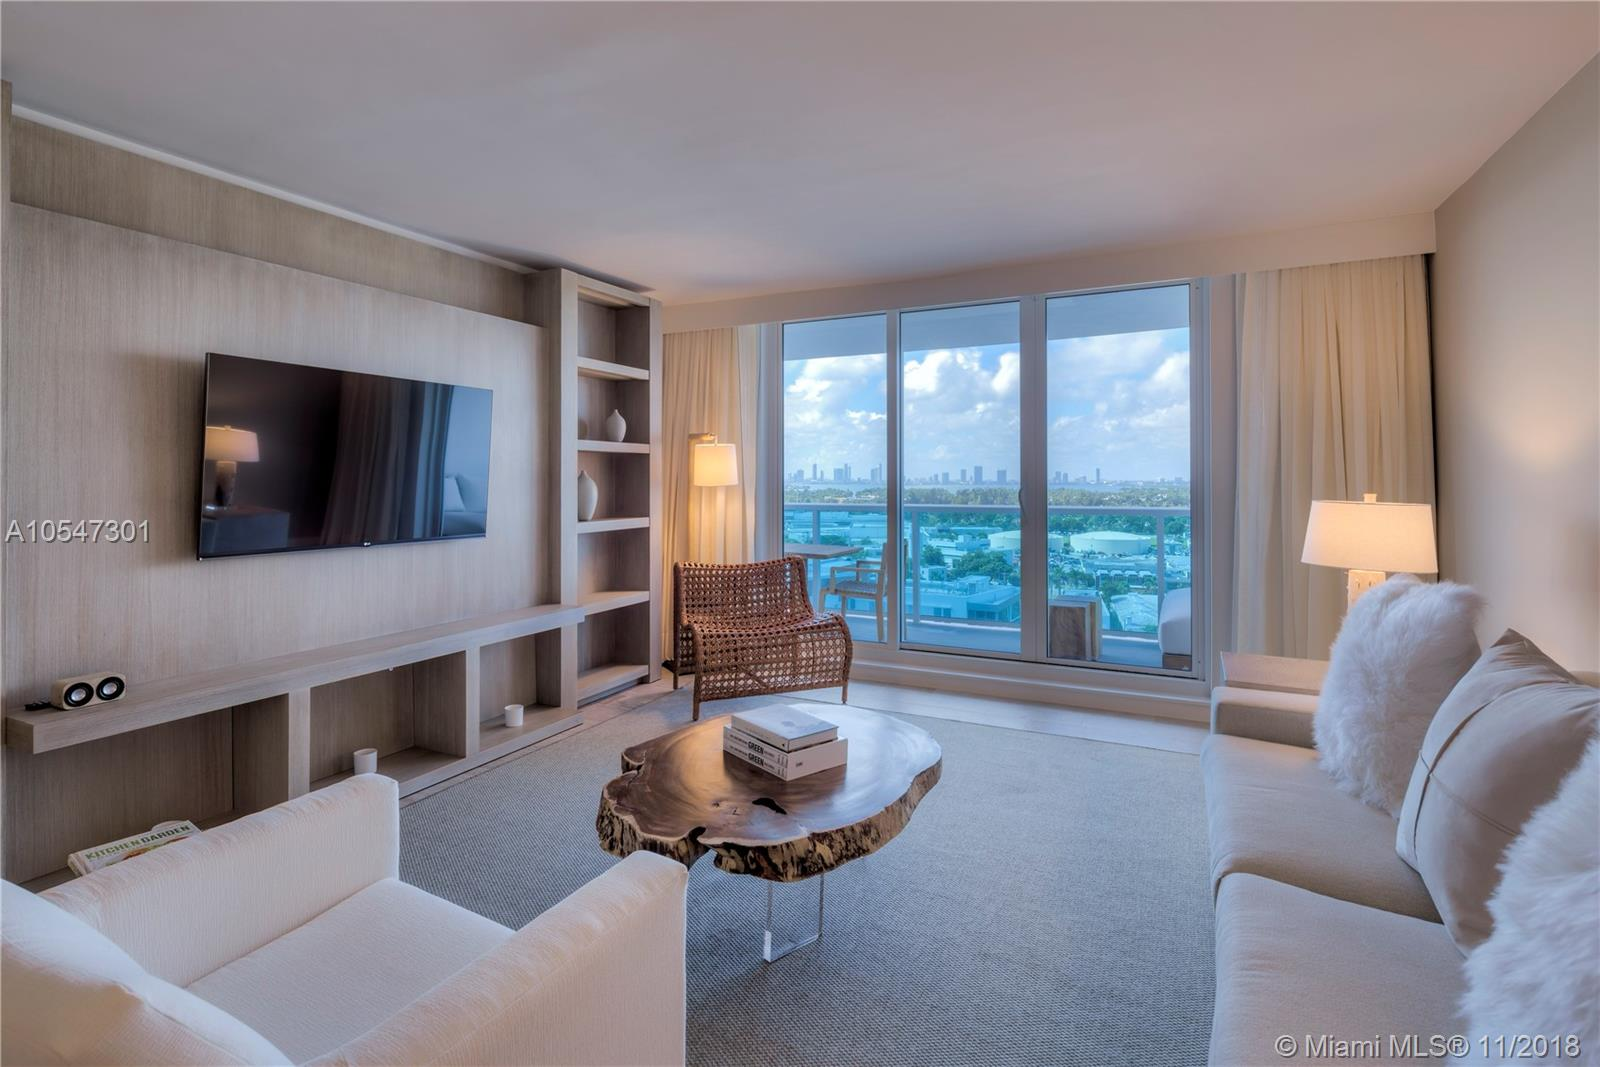 Gorgeous 2 bedroom skyline view luxury 1,239 Sq. Ft. condo rents between 30% - 60% below hotel rates. Why pay more if you don't have to? Luxurious linens and towels, Gilchrist and Soames toiletries, and daily coffee and tea. Residence comes with a fully furnished private balcony with views of the Miami Skyline. Custom Italian and Brazilian furniture package provided by hotel. Plush living room sofa that converts into a queen bed, ItalKraft kitchen with stainless steel Bosch & Subzero appliances and a 4 seat dining table. Our guests have access to all of the hotel amenities including 4 swimming pools, 4 restaurants, beach service, cabanas, fitness center, spa, valet service, concierge, ballroom, conference rooms and more.